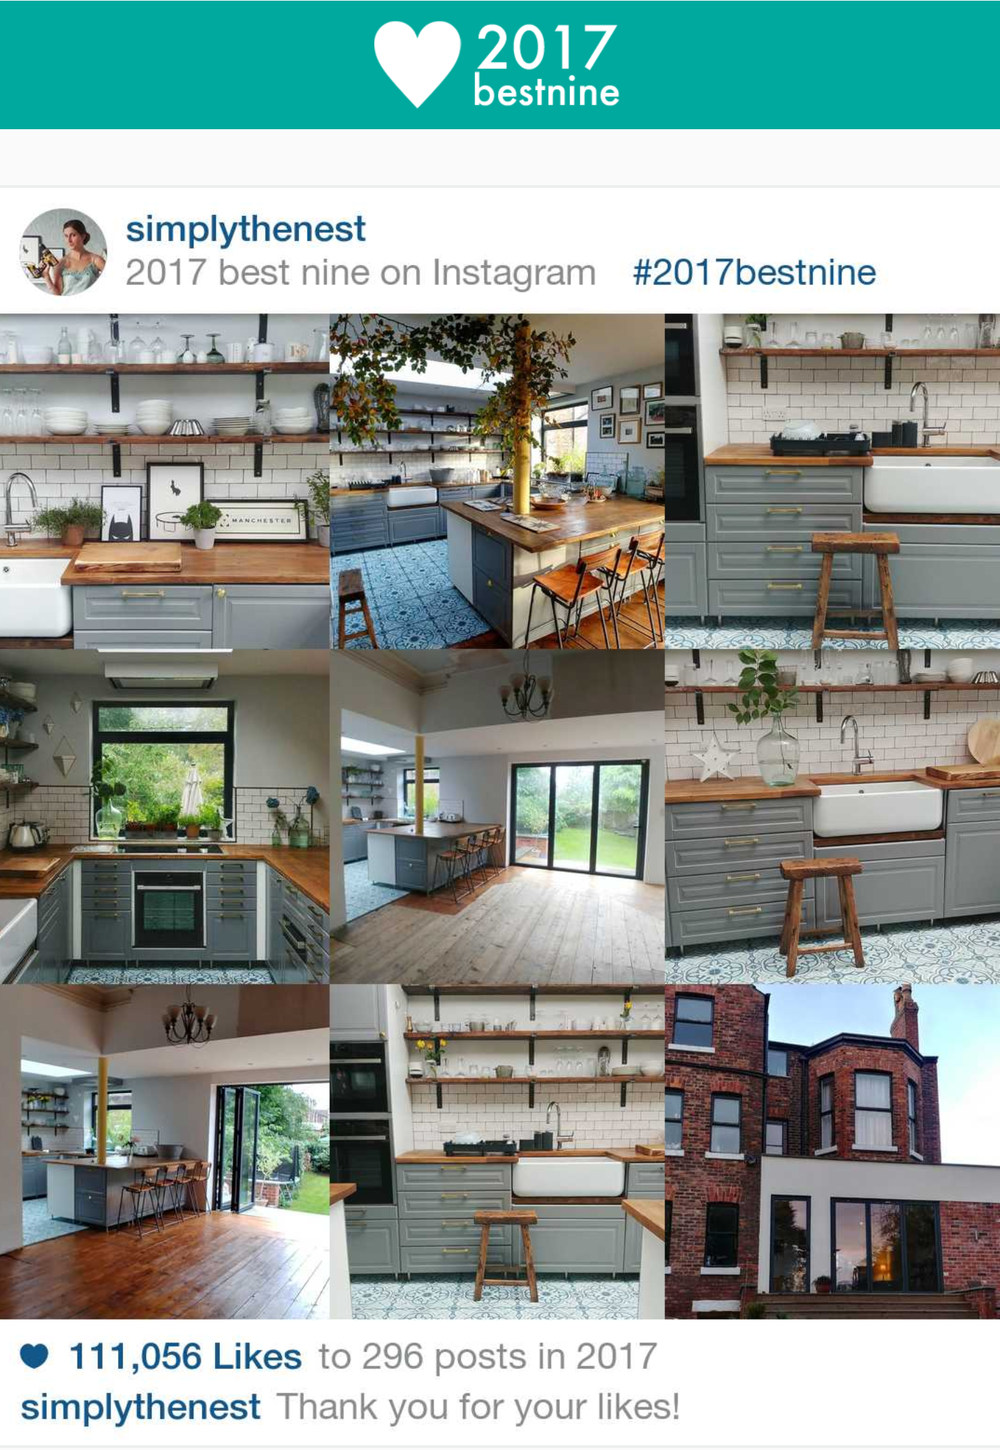 Eight pictures of the kitchen feature in my top nine most popular posts on Instagram, so clearly I'm not the only one who likes how the space turned out!